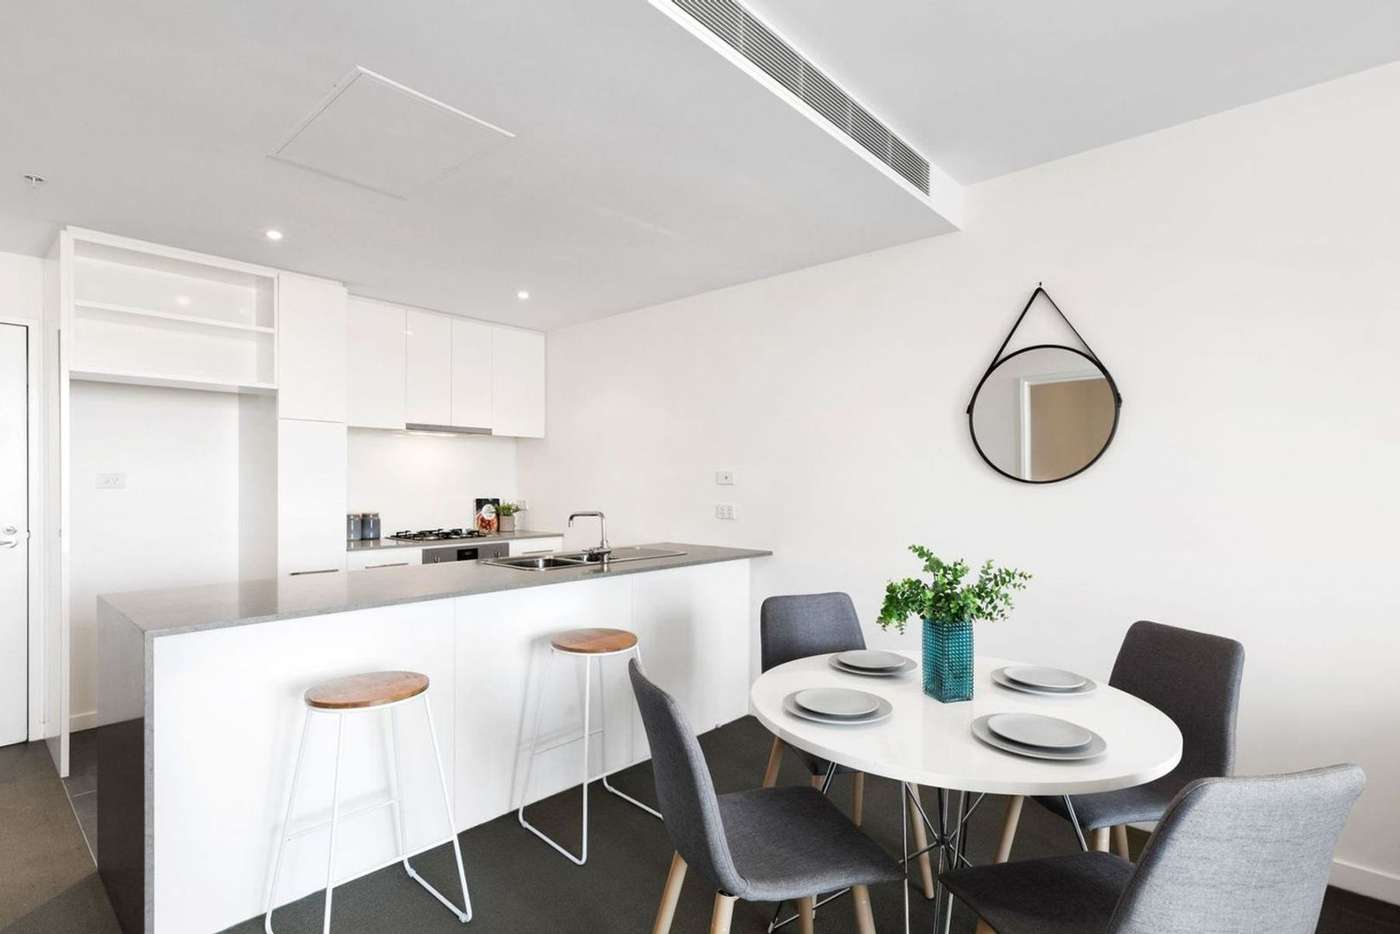 Main view of Homely apartment listing, 906/8 Marmion Place, Docklands VIC 3008